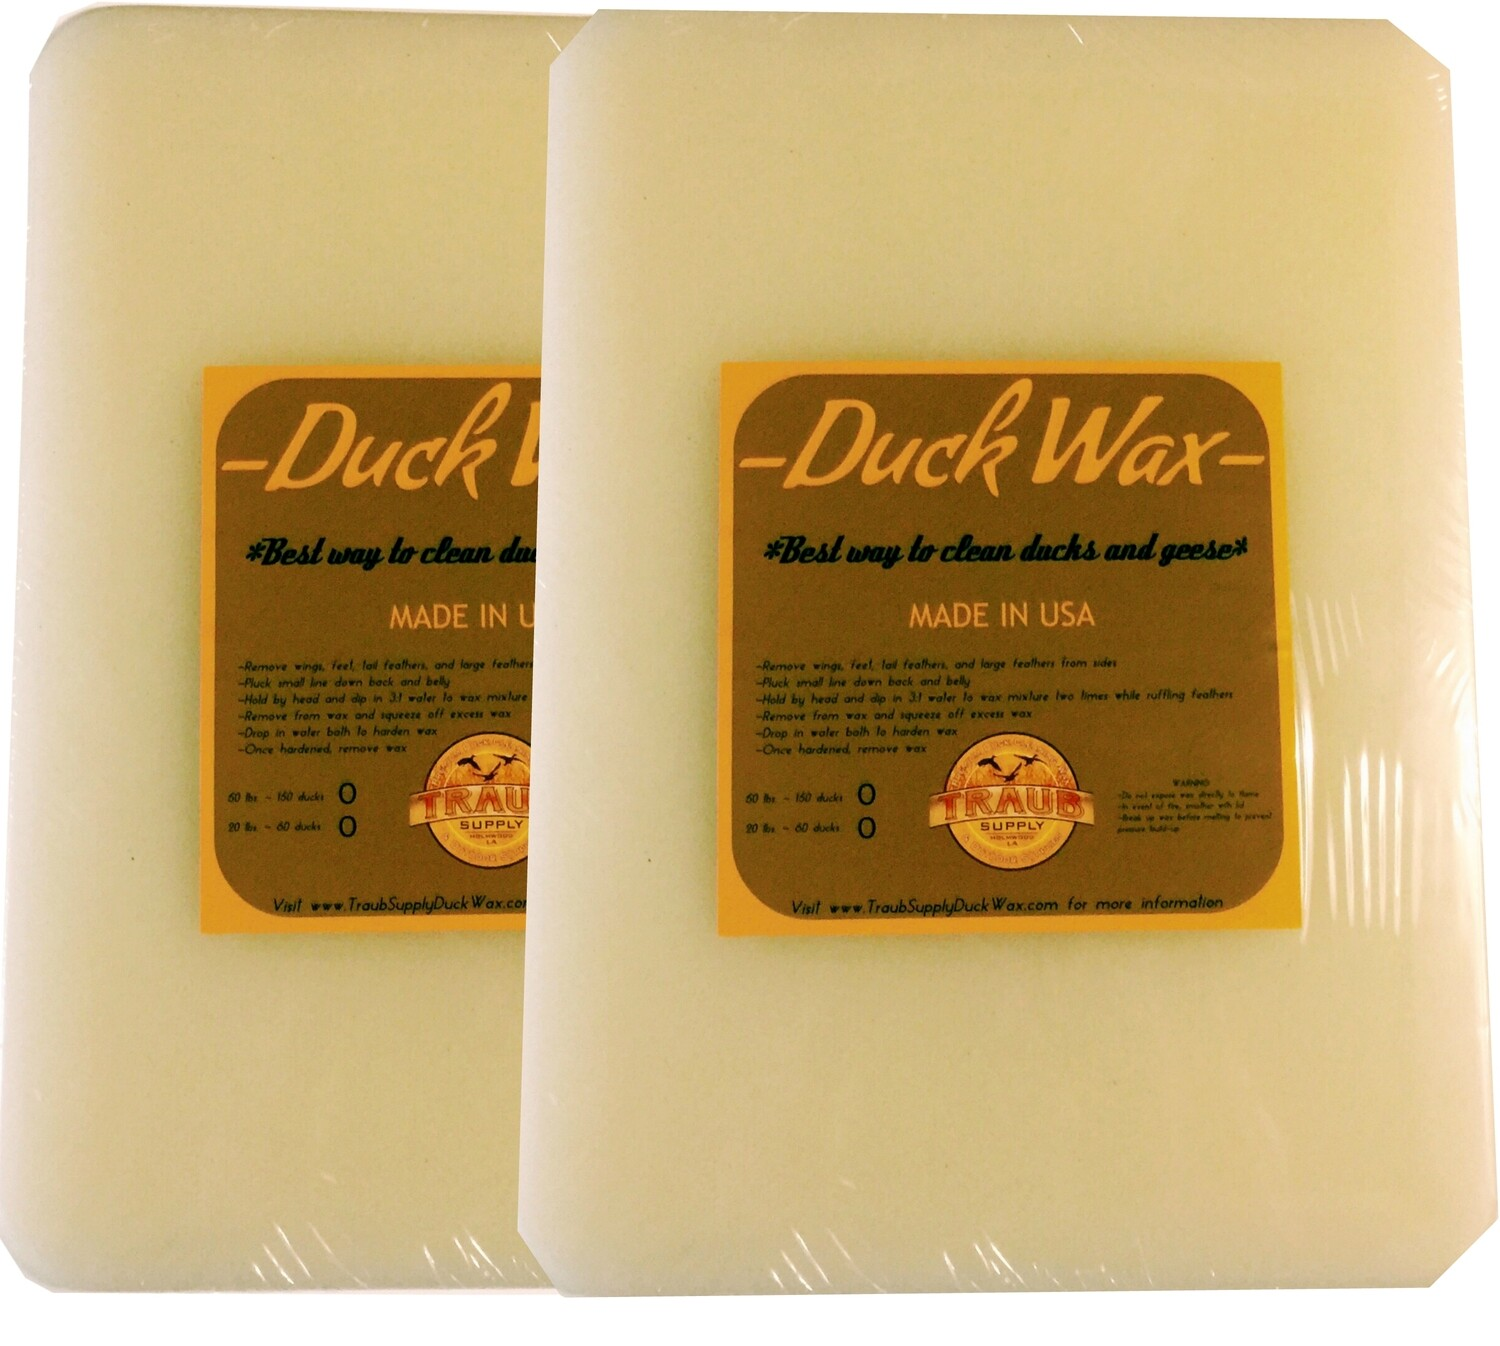 BUY NOW - 2 slabs 22 lbs. Farm Duck Wax (CLEANS ABOUT 40-60 FARM DUCKS) USA ONLY SHIPPING INCLUDED